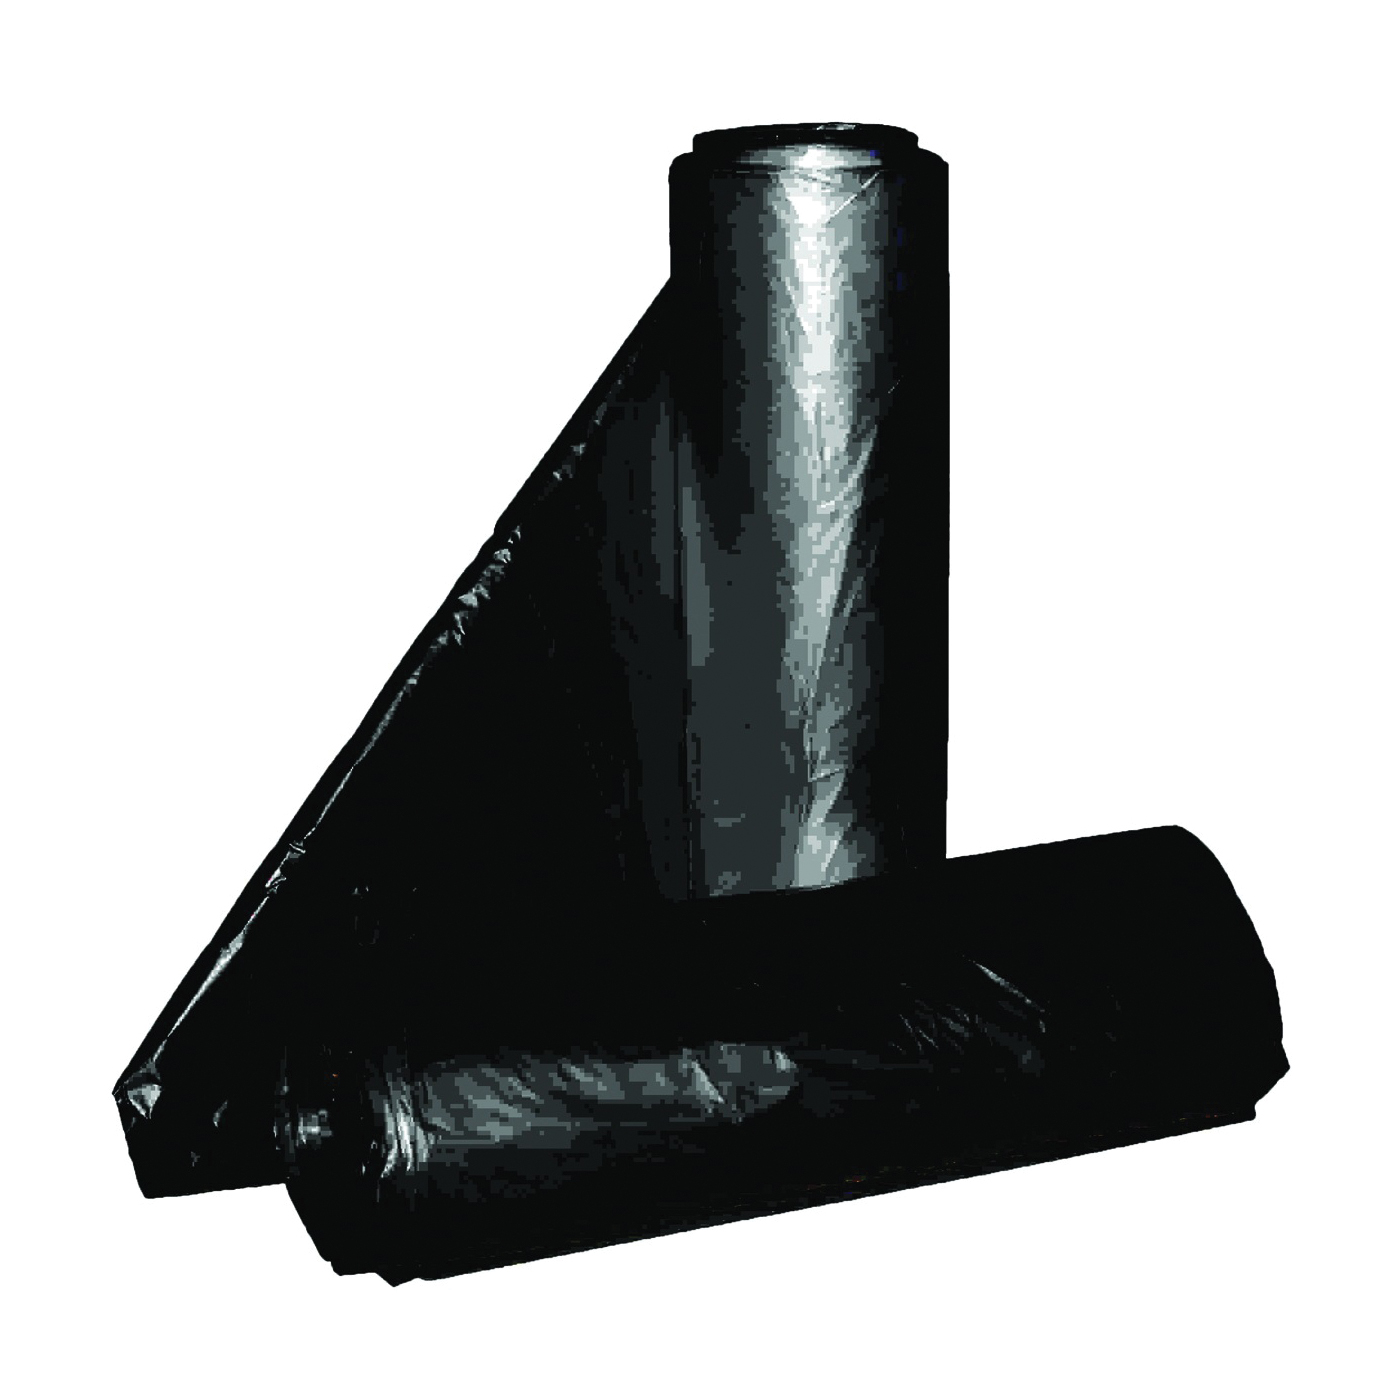 Picture of ALUF PLASTICS RL Series RL-4047XXH Can Liner, 45 gal Capacity, Repro Blend, Black